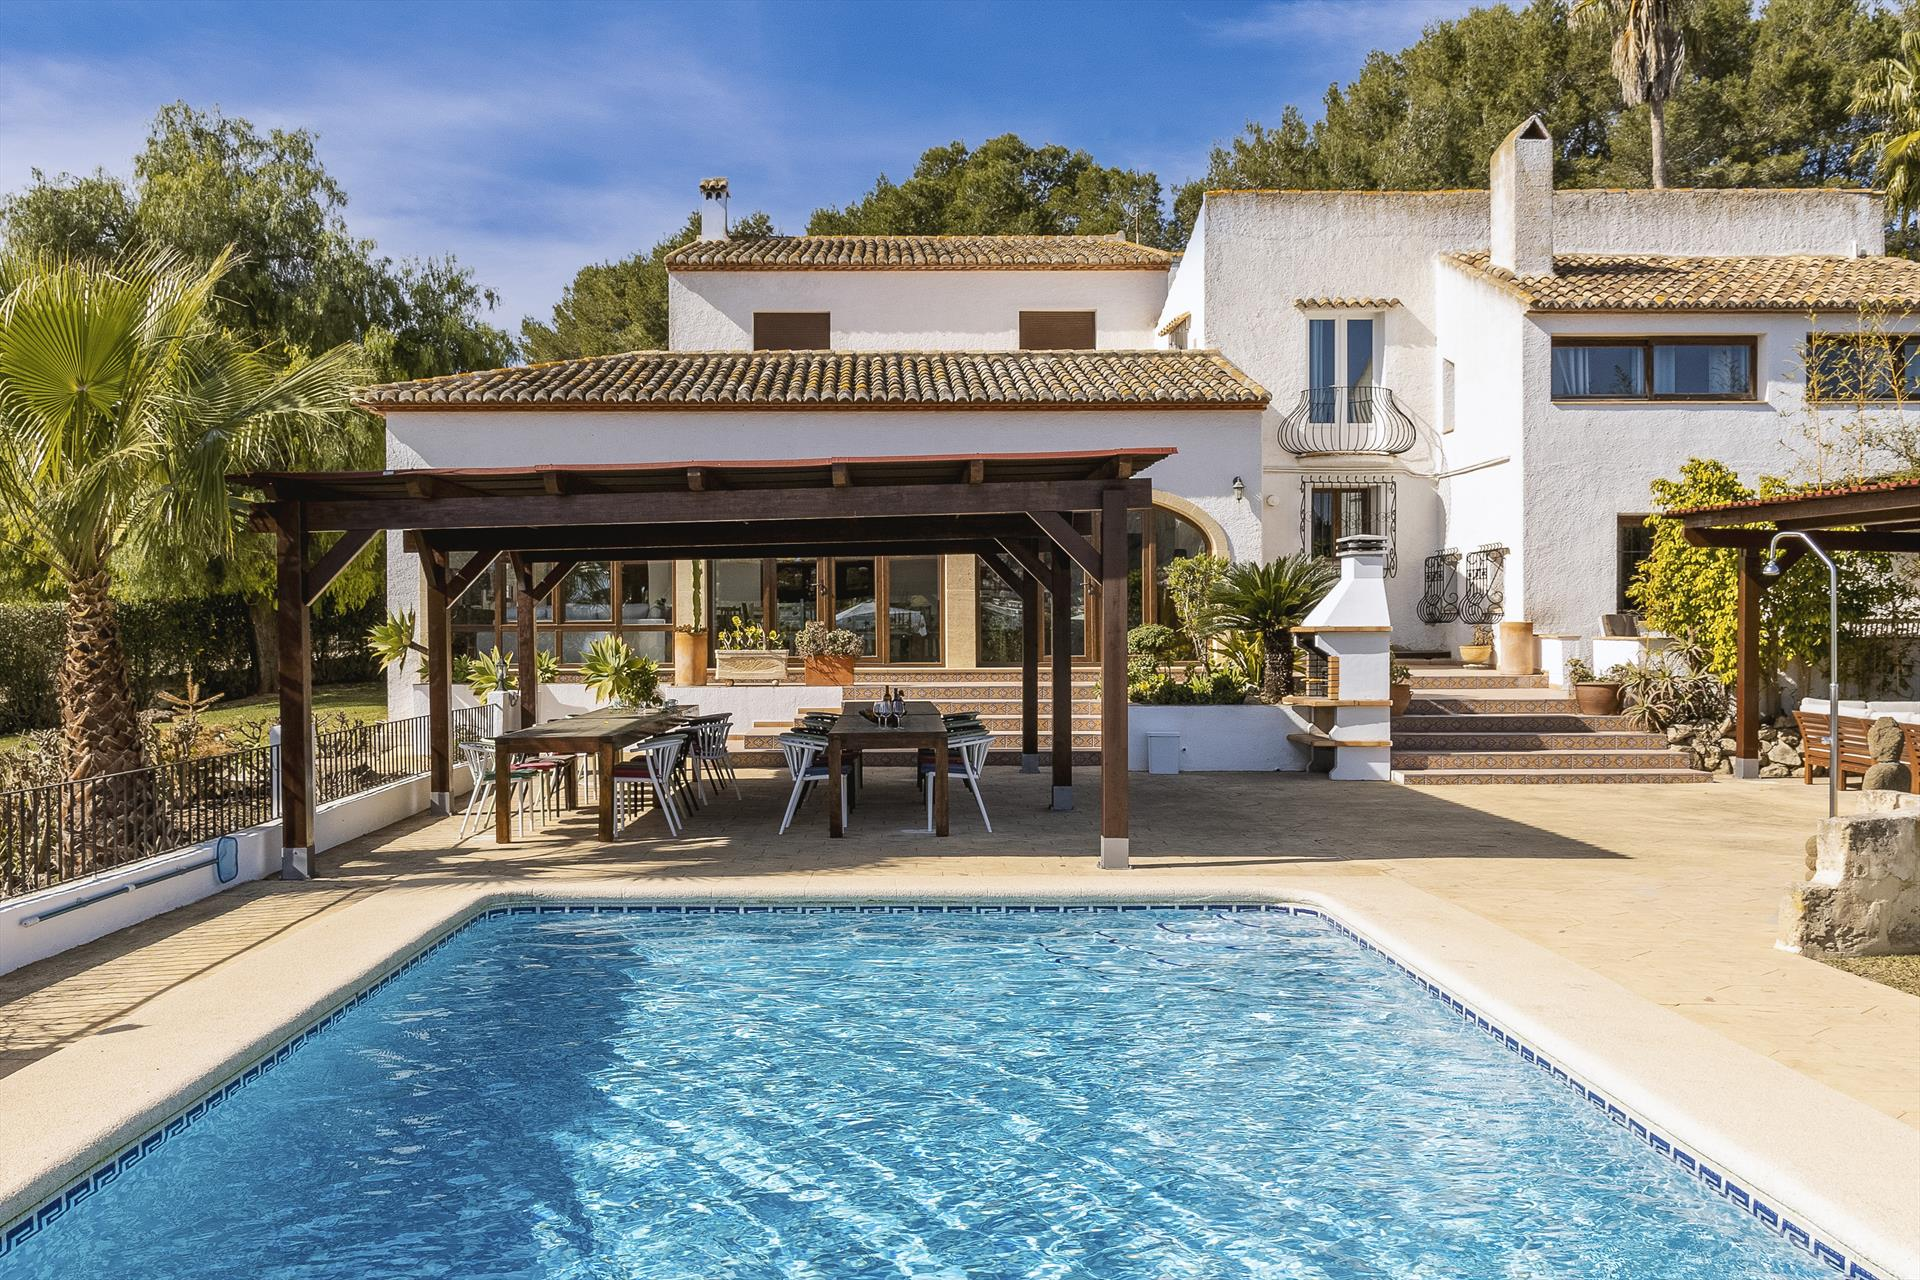 Casa Rosalia 16 pax, Wonderful and classic villa  with private pool in Javea, on the Costa Blanca, Spain for 16 persons.....